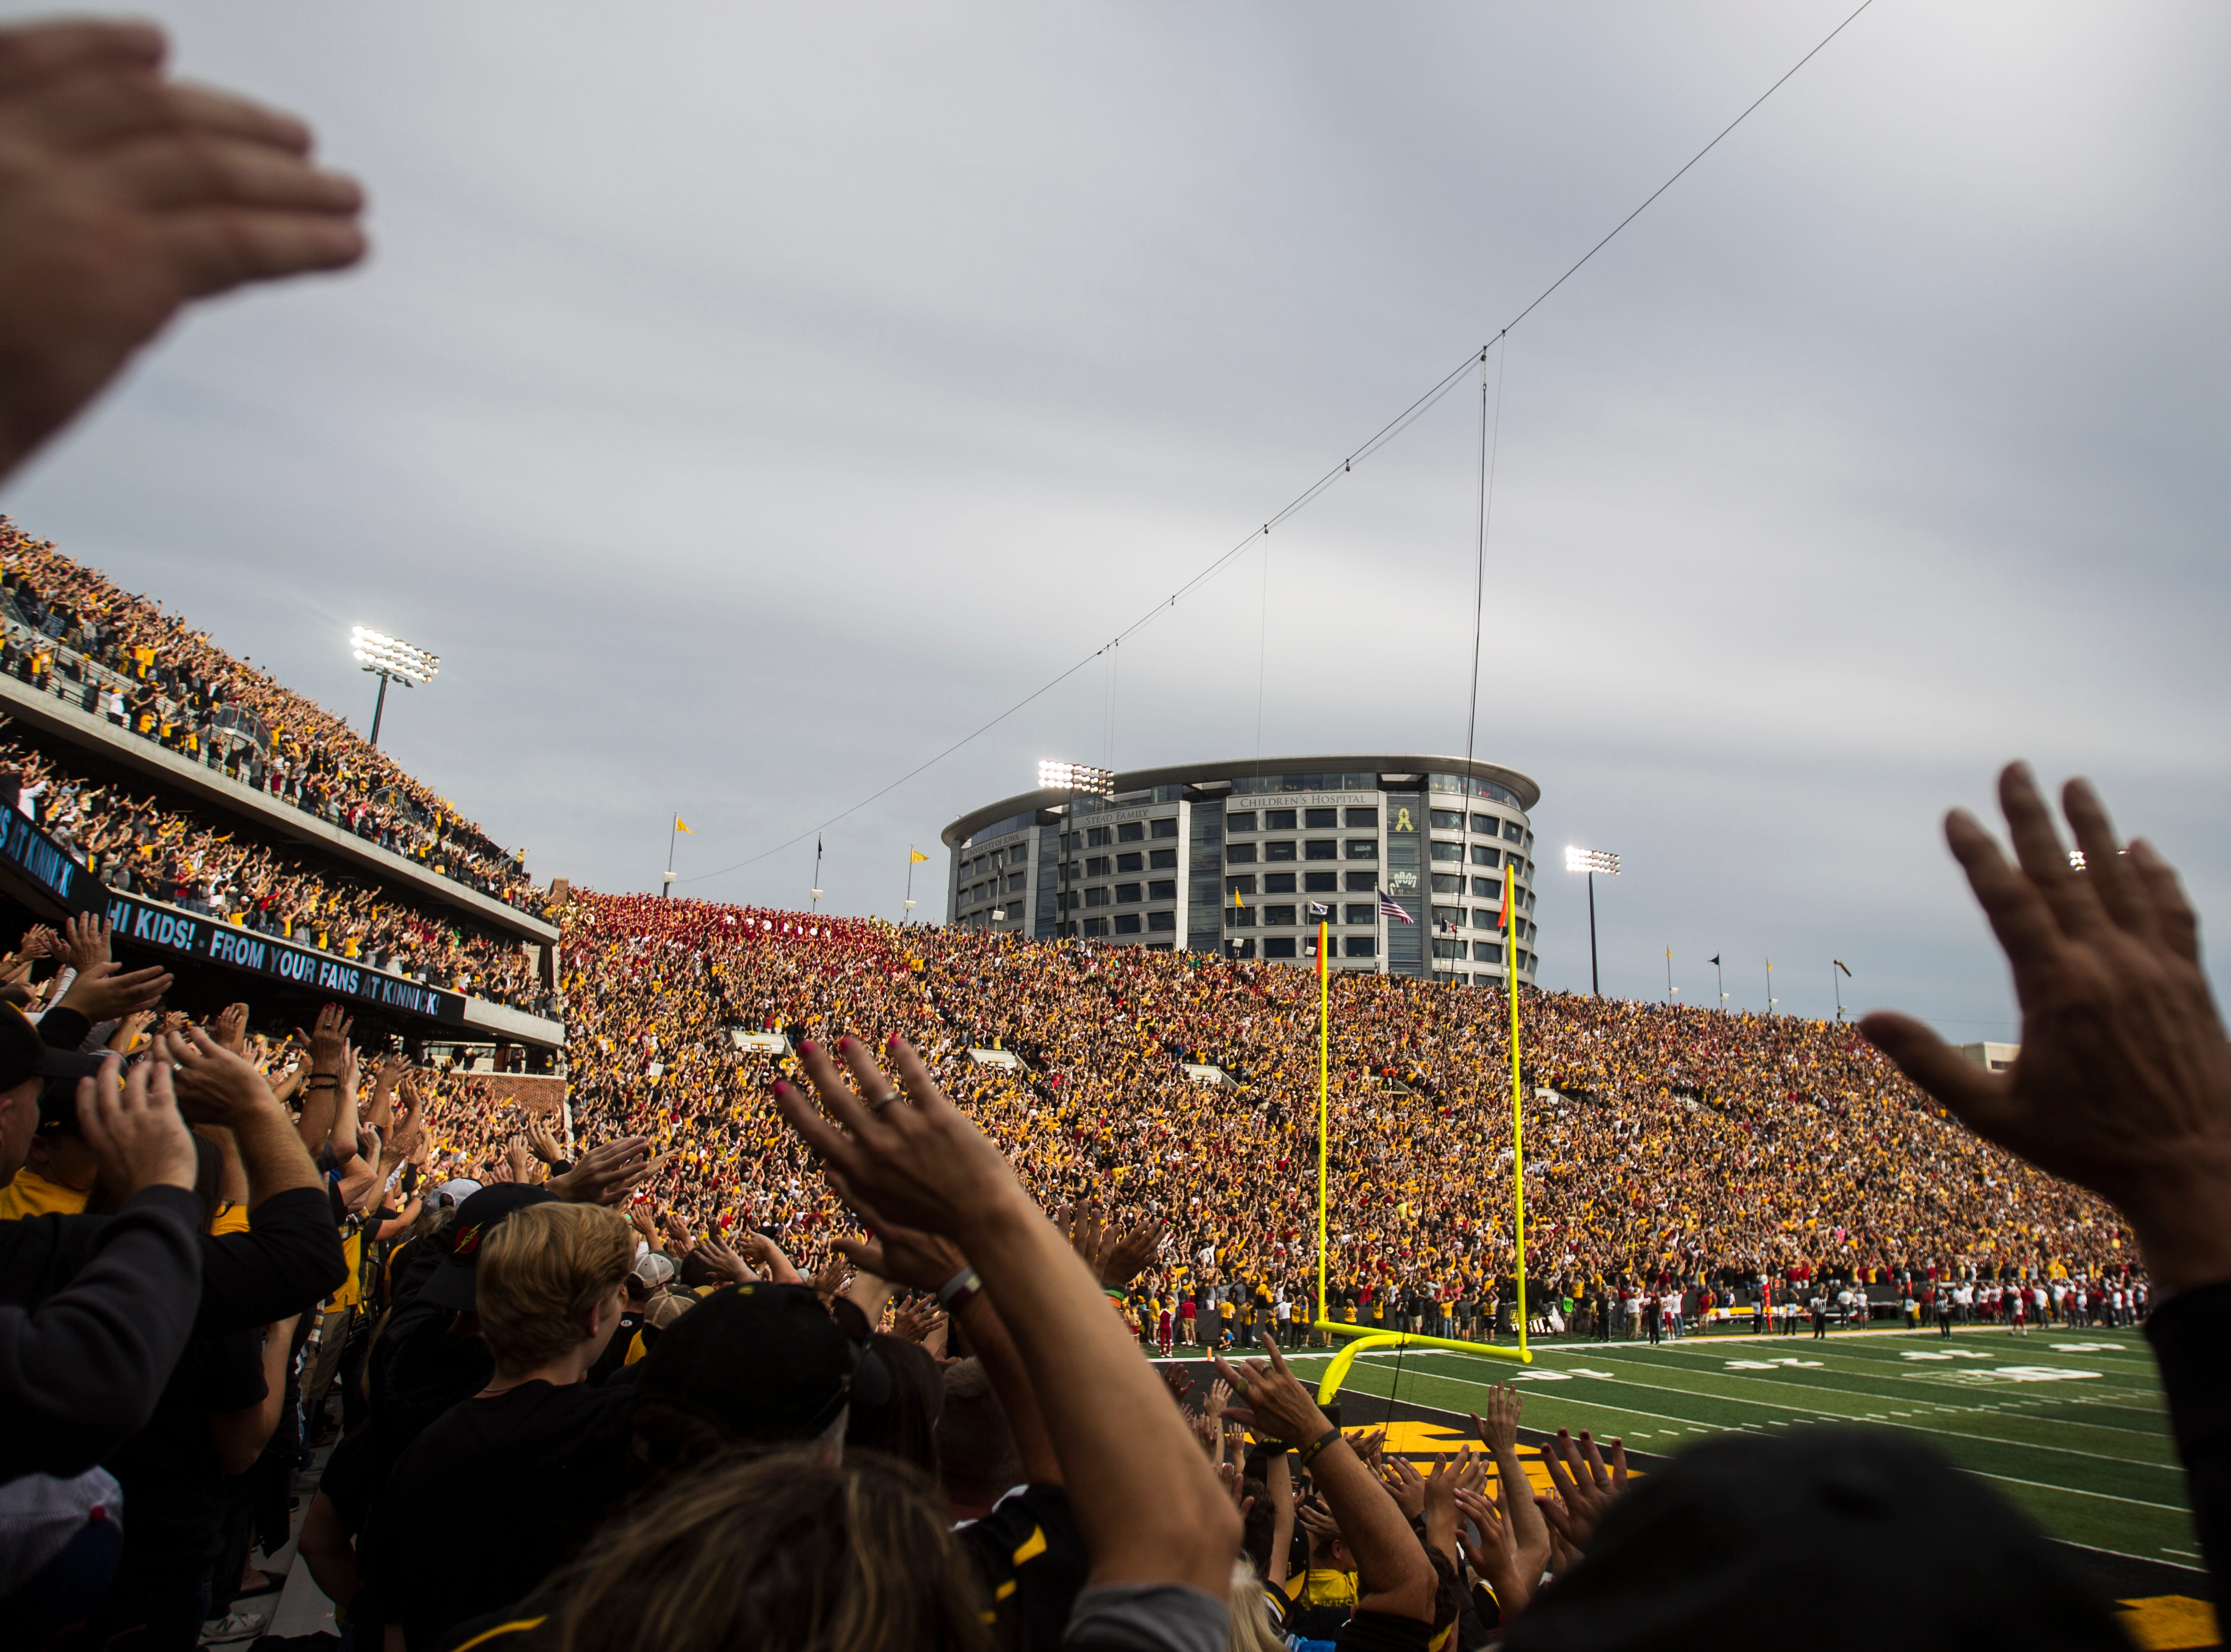 Iowa fans wave to patients in the University Stead Family Children's Hospital after the first quarter during the Cy-Hawk NCAA football game on Saturday, Sept. 8, 2018, at Kinnick Stadium in Iowa City.